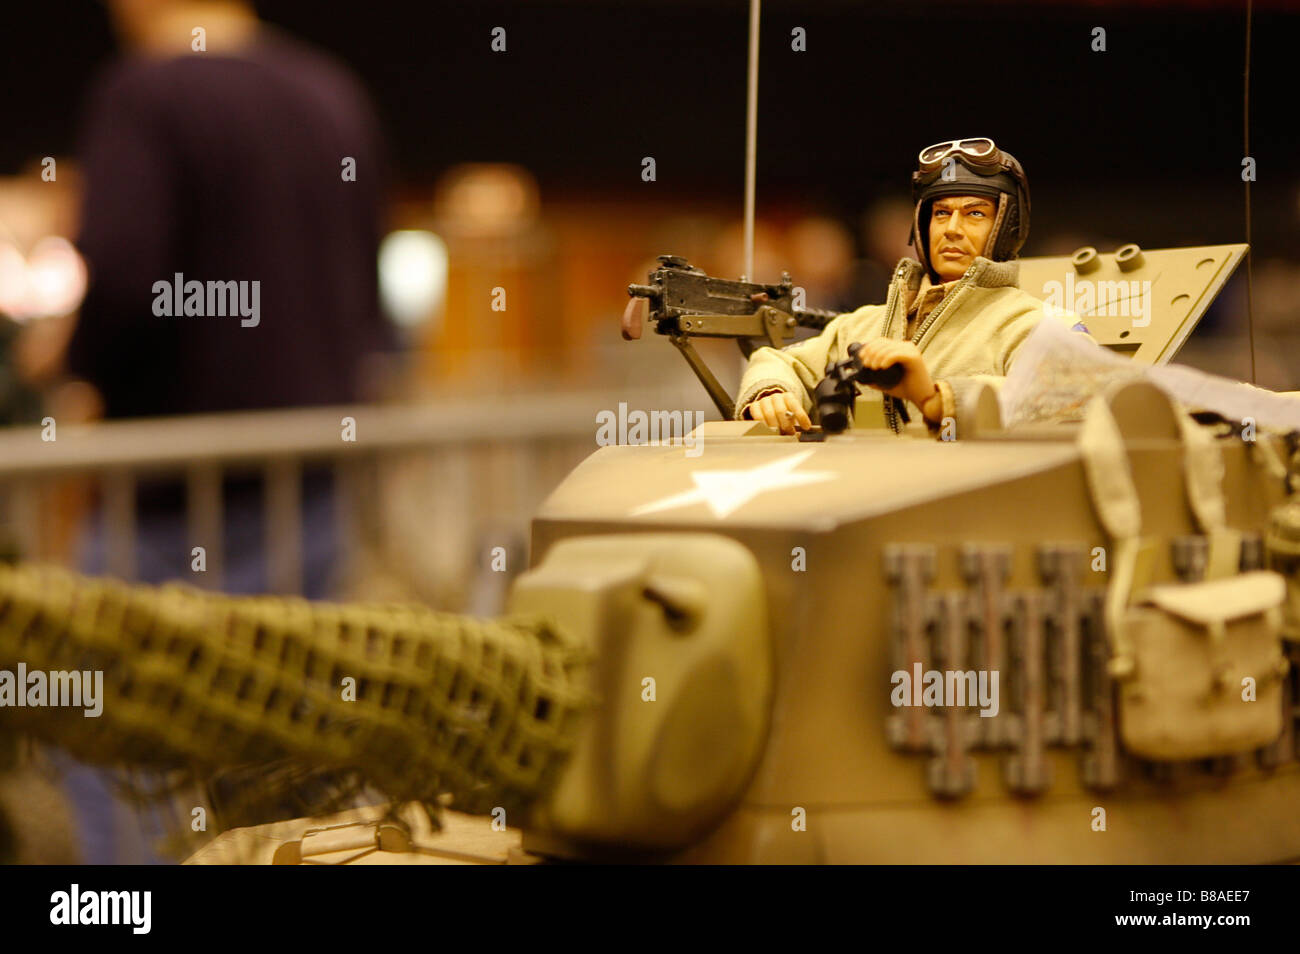 Close-up of turret of 1:6 scale model American tank Modelworld Brighton - Stock Image